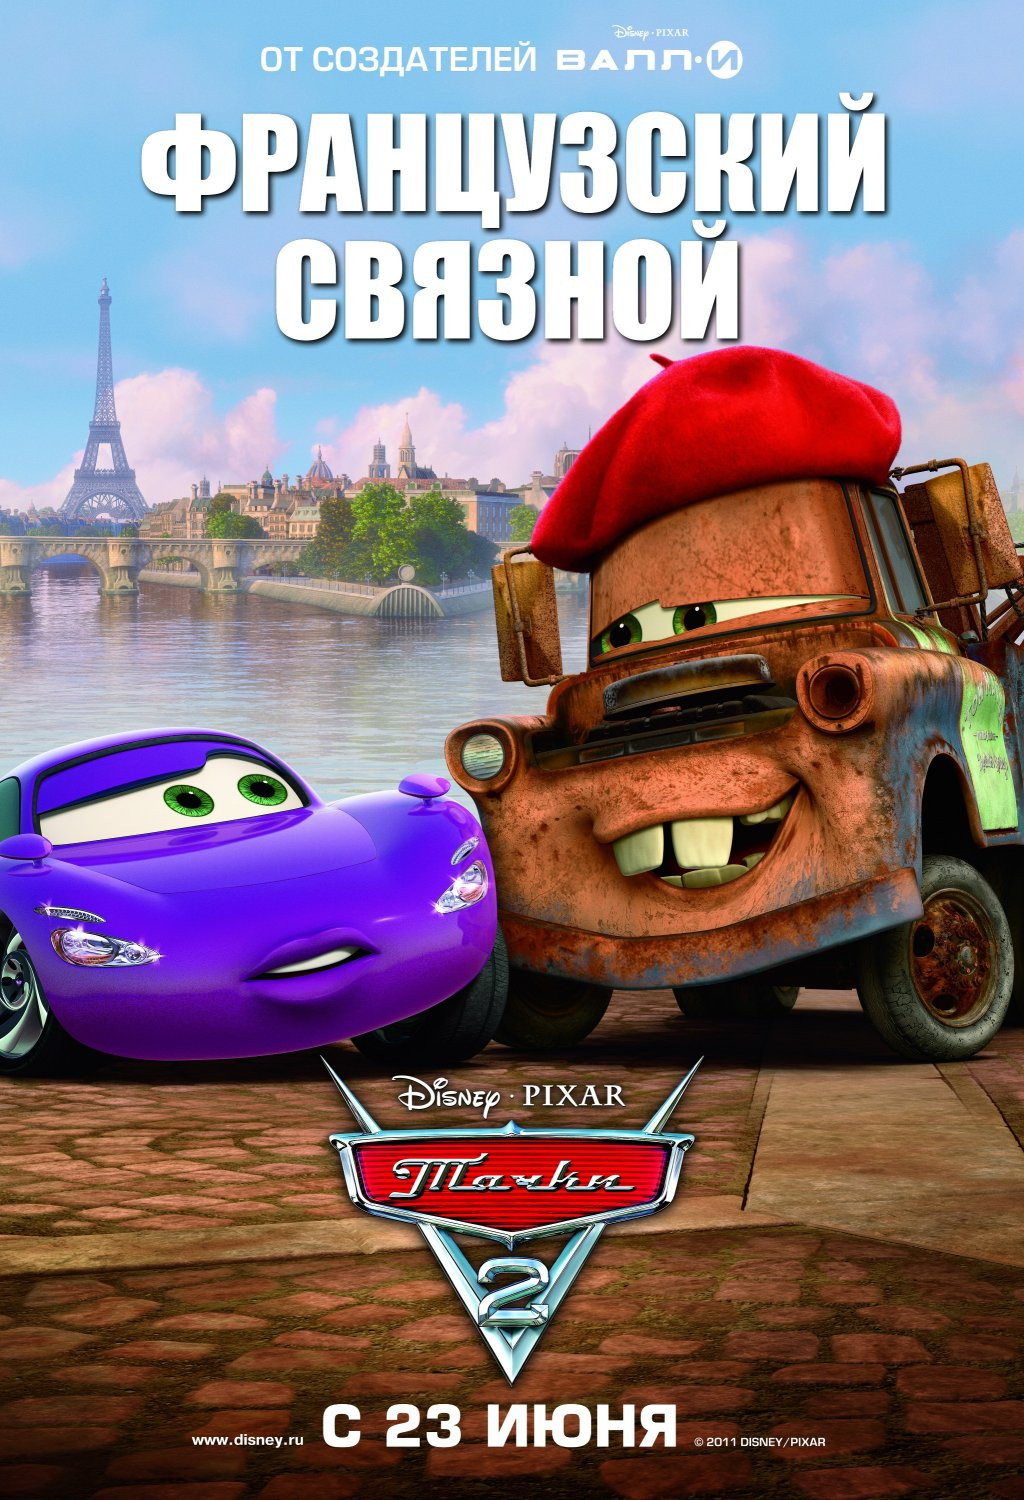 Seven Great Cars 2 Russian Posters Unveiled Update